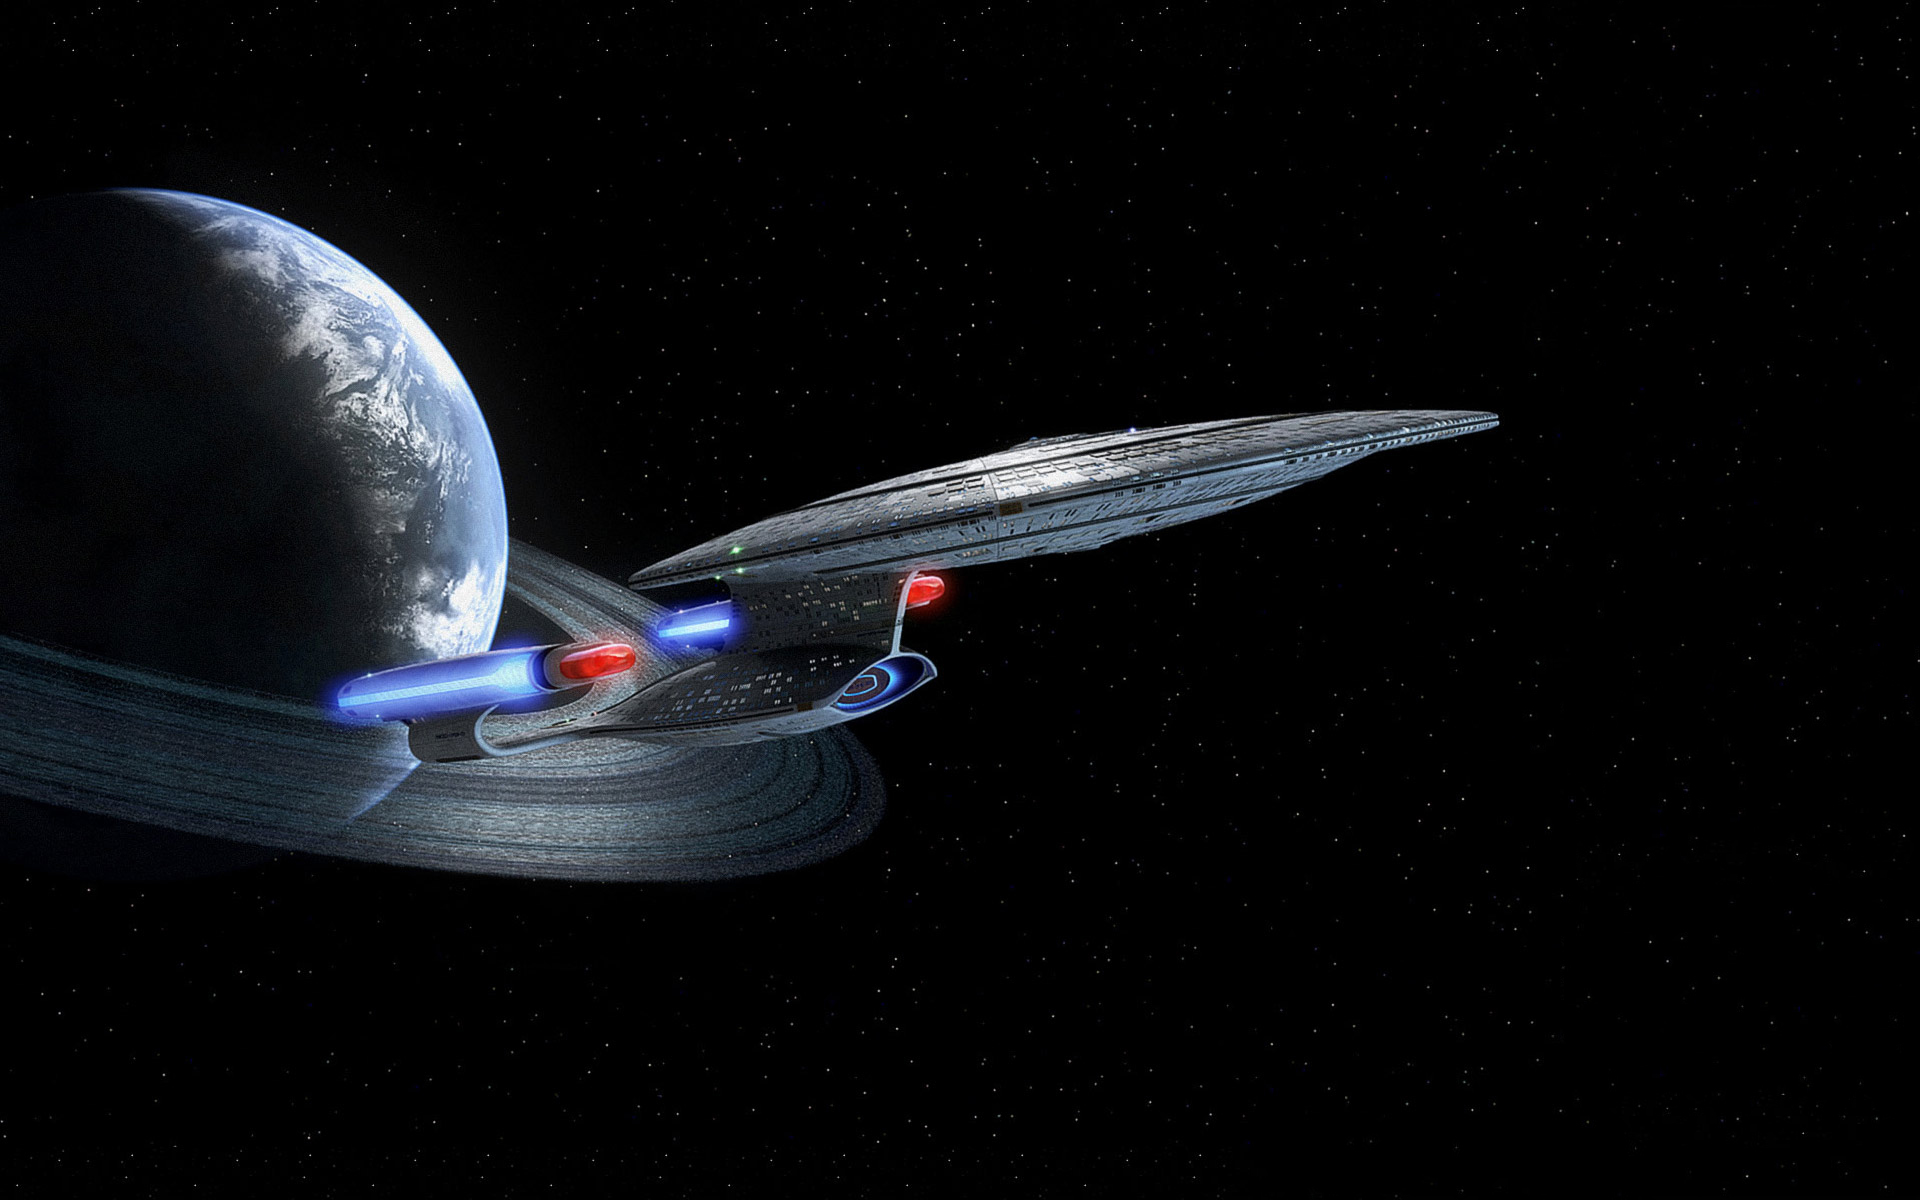 Star Trek Wallpaper Free